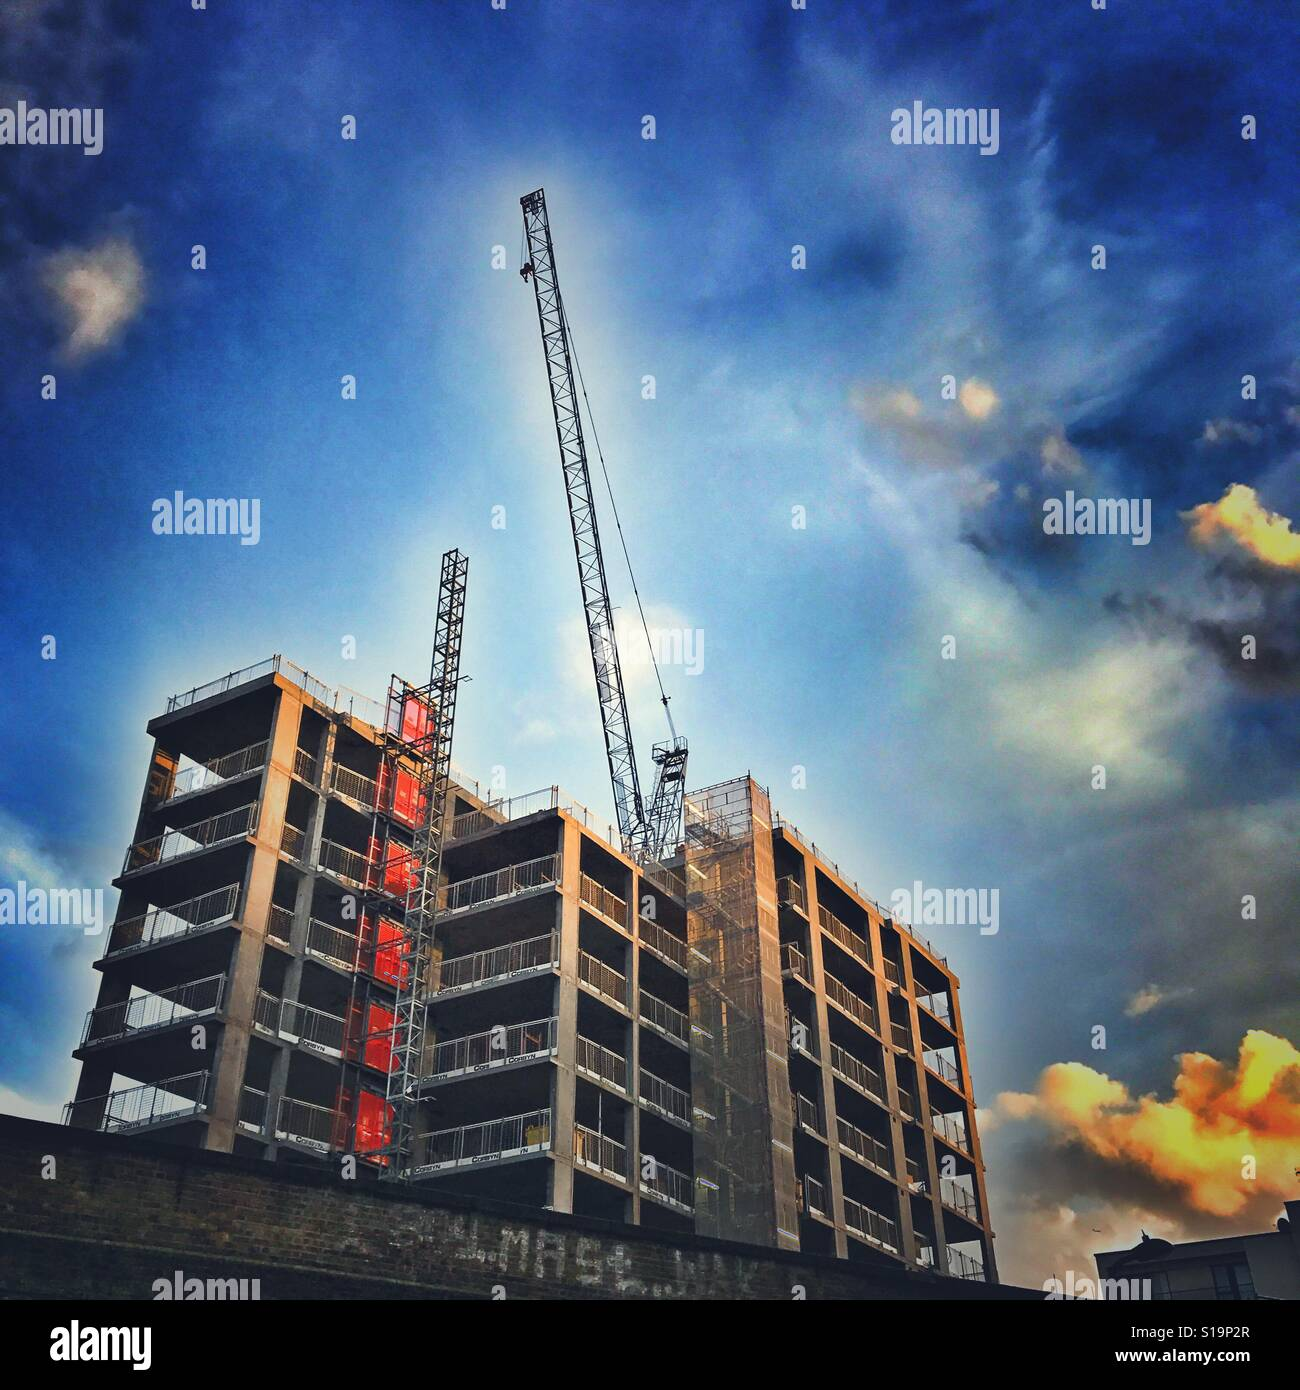 A new housing block being built in London - Stock Image